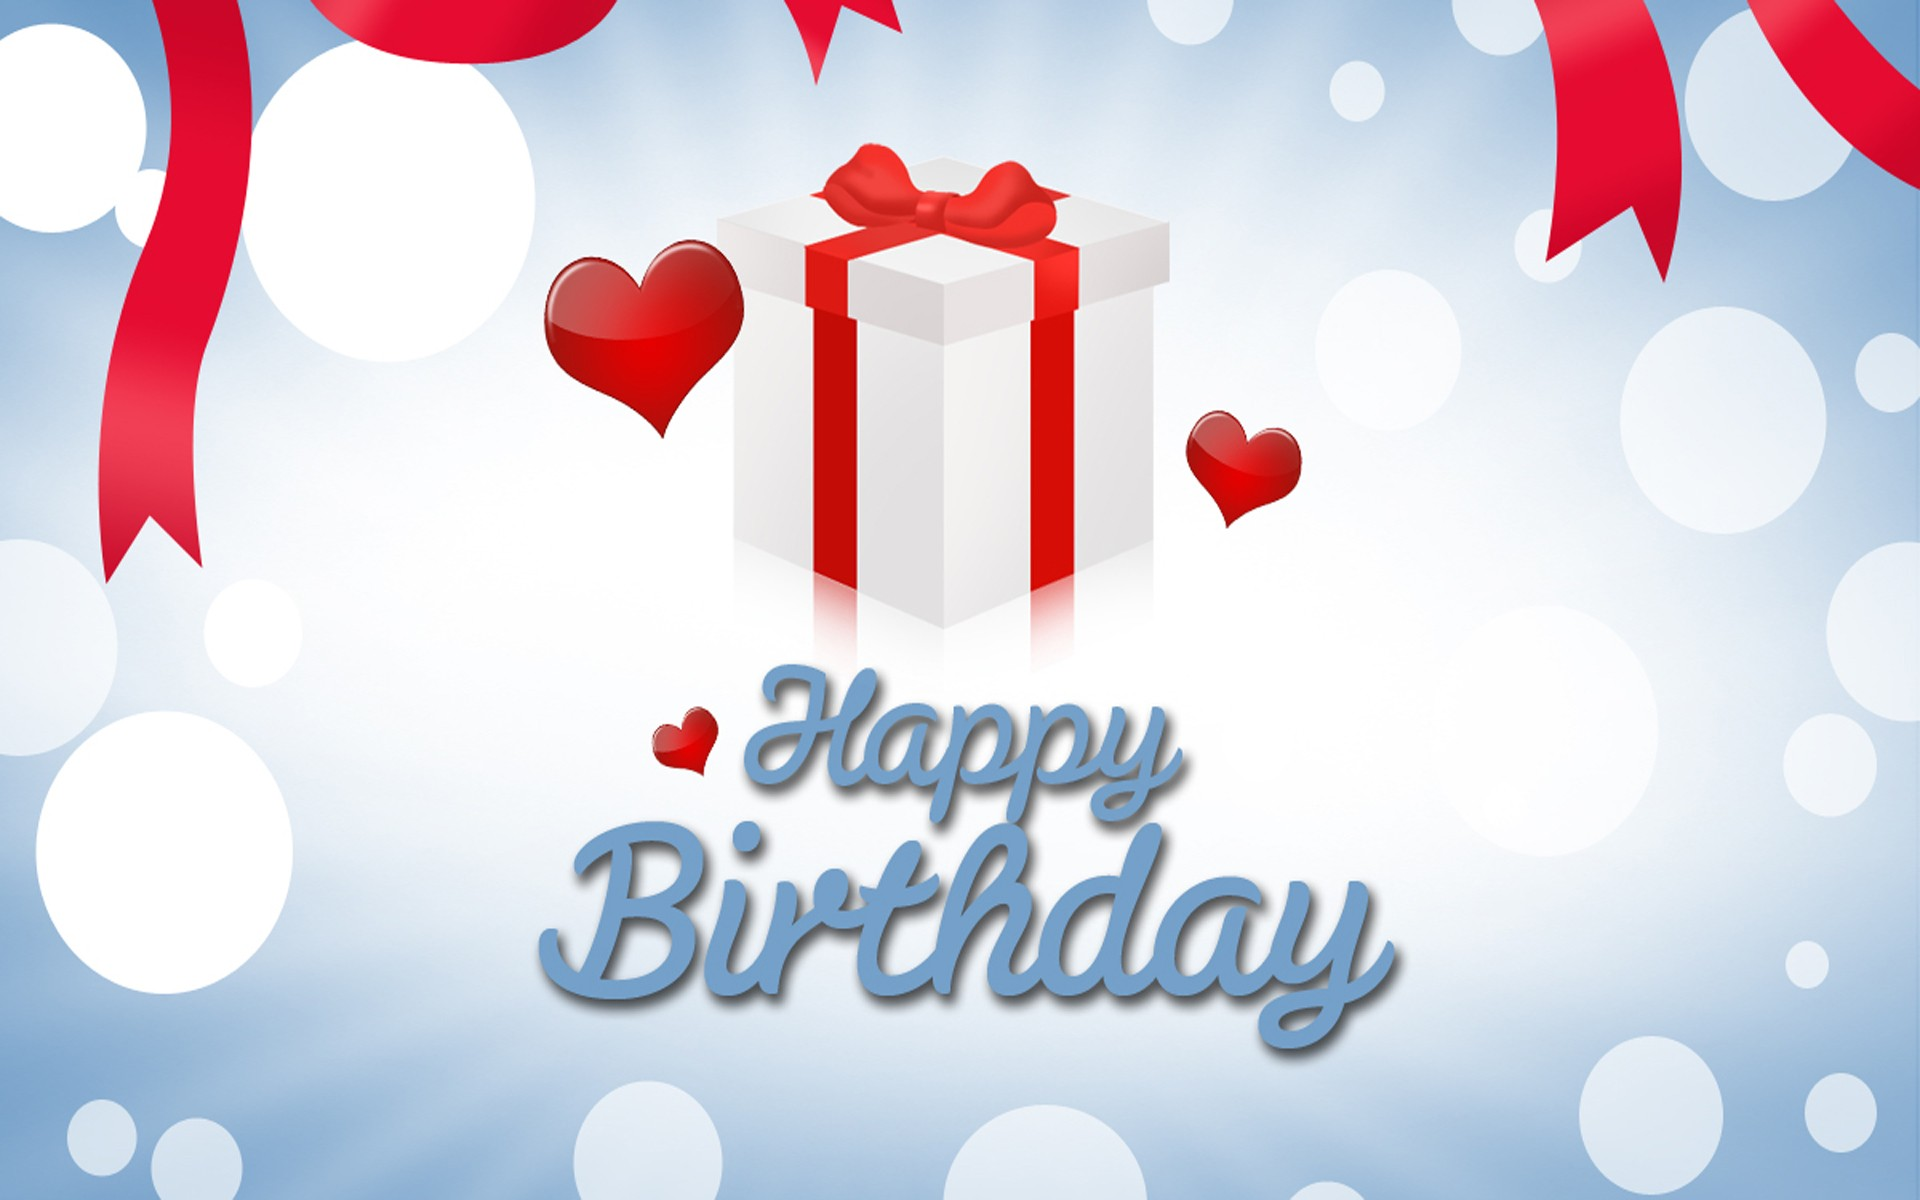 Birthday Love Sms Marathi Picture Ideas With Ecards By Hallmark Also Image Of Themes